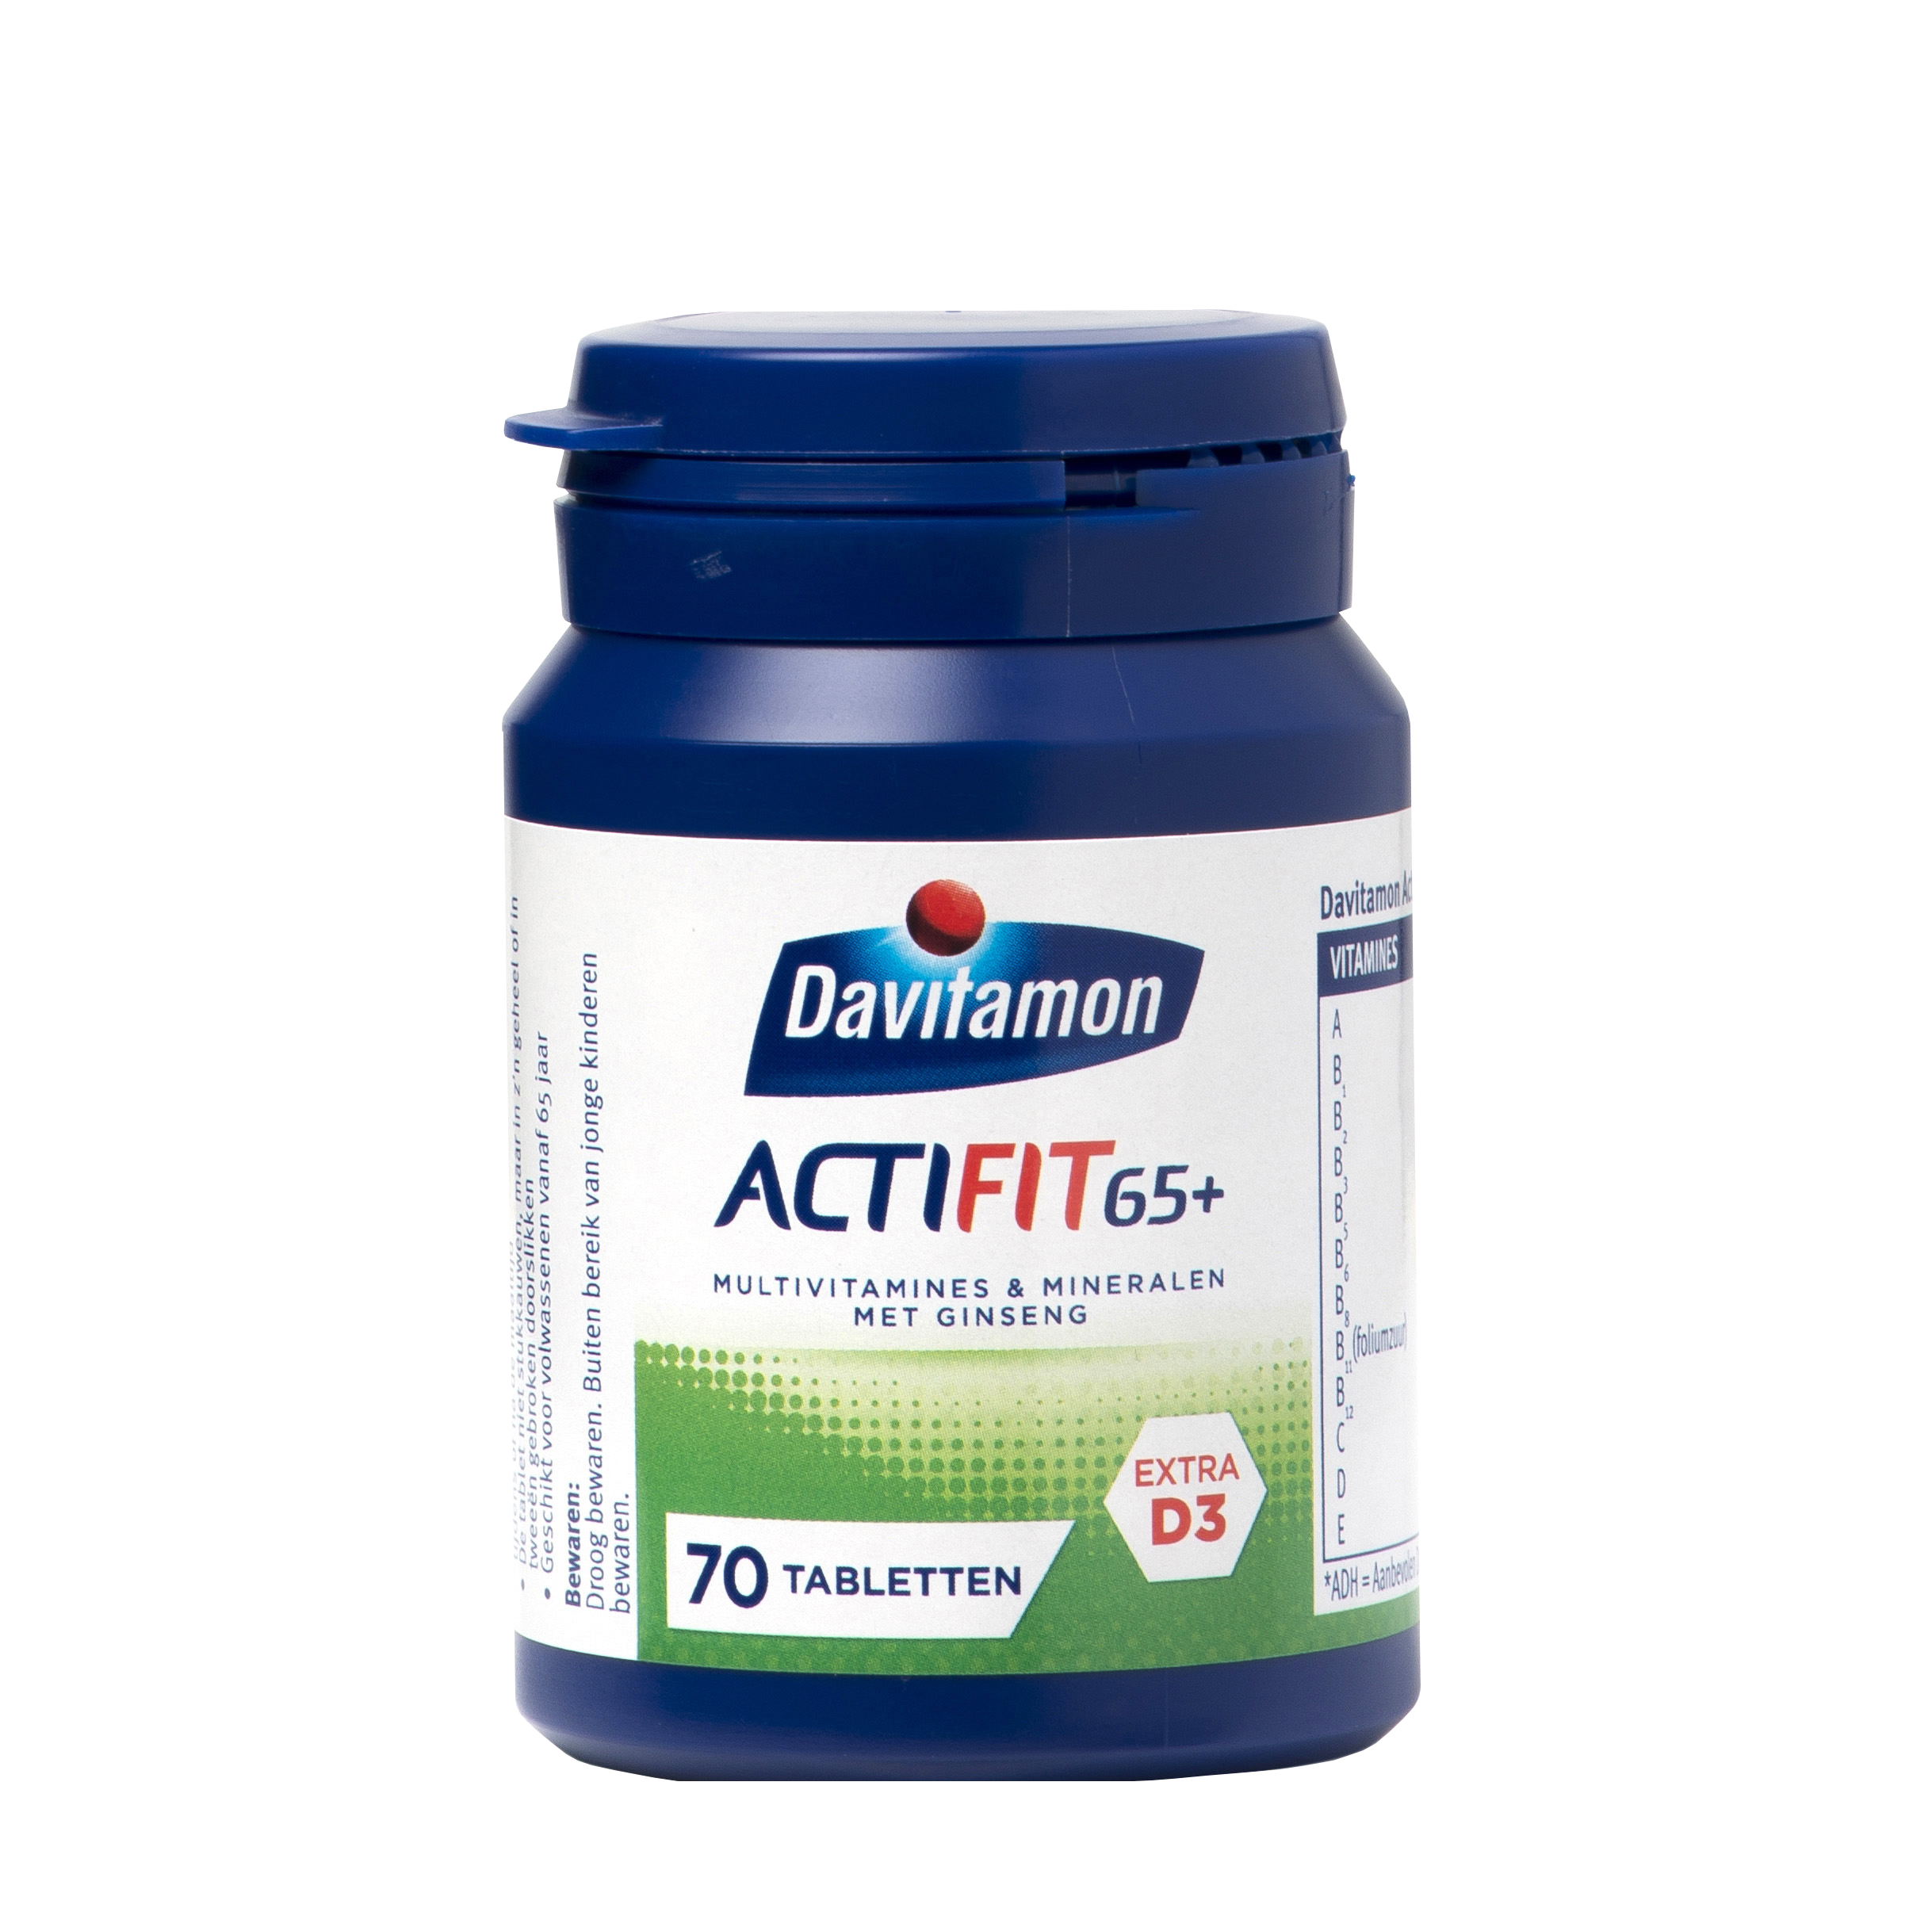 Davitamon Actifit 65+ Tabletten: multivitamines & mineralen met ginseng